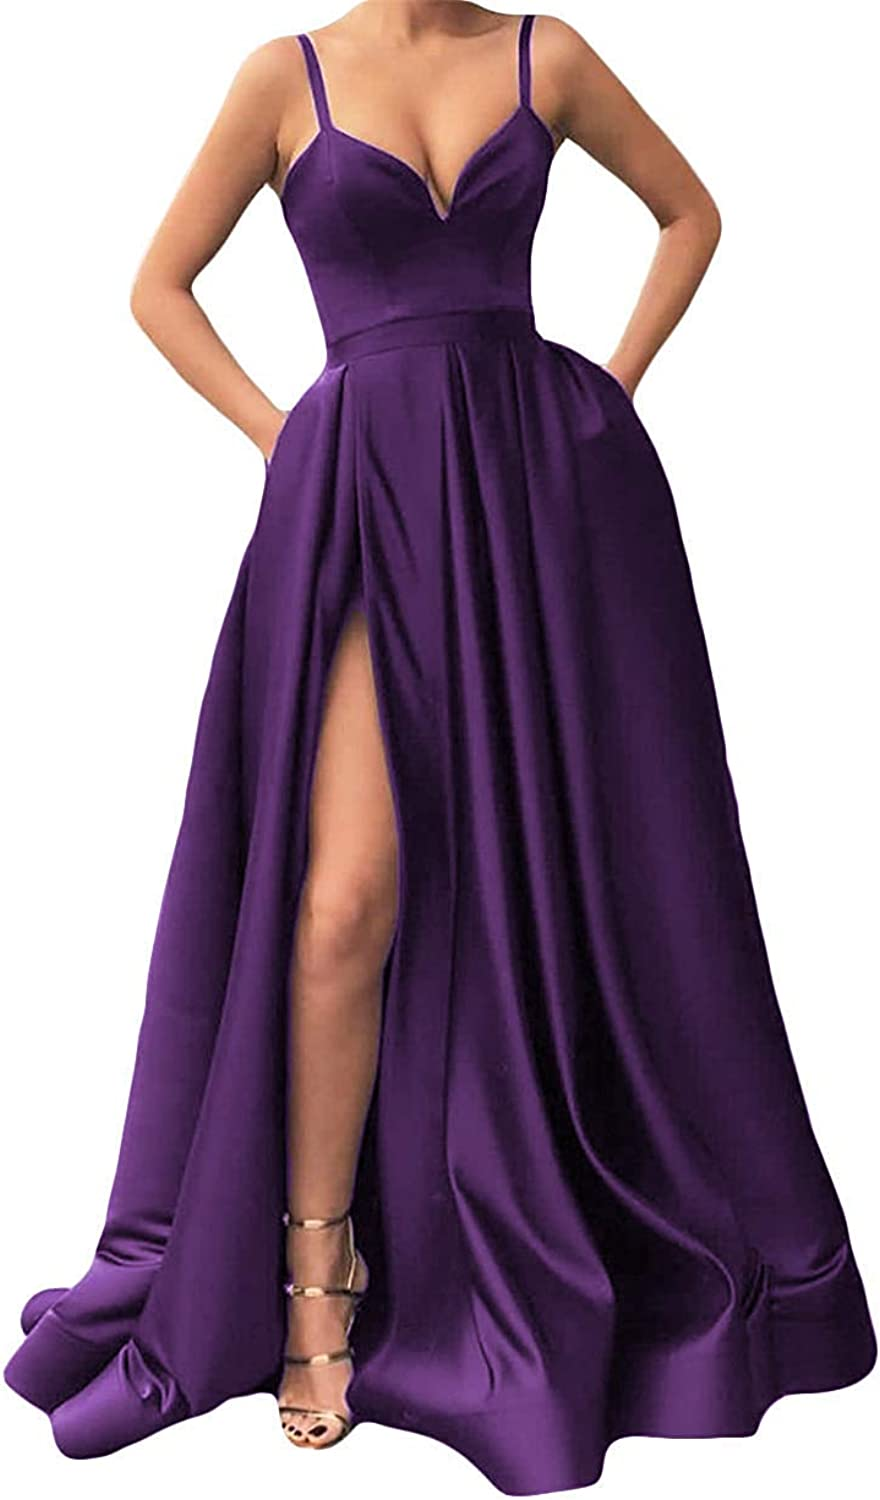 Annadress Women's A Line Prom Dresses Spaghetti Straps Evening Gowns Prom Party Gowns